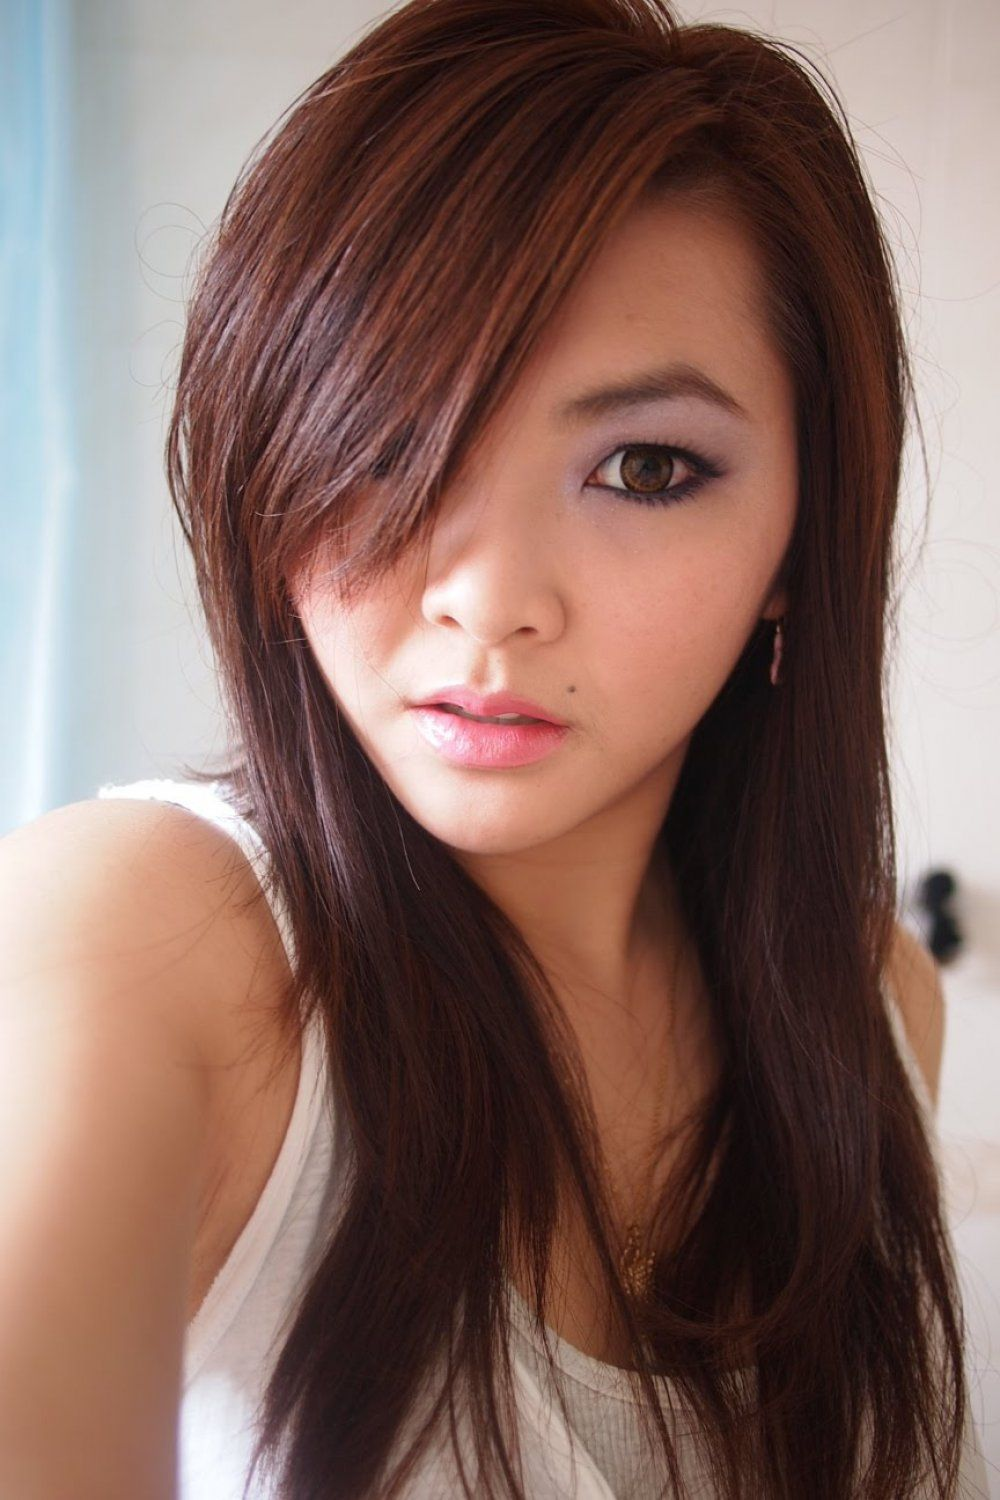 dark brown hair color for asian best color to dye gray hair Options for Coloring Gray Hair Options for Coloring Gray Hair